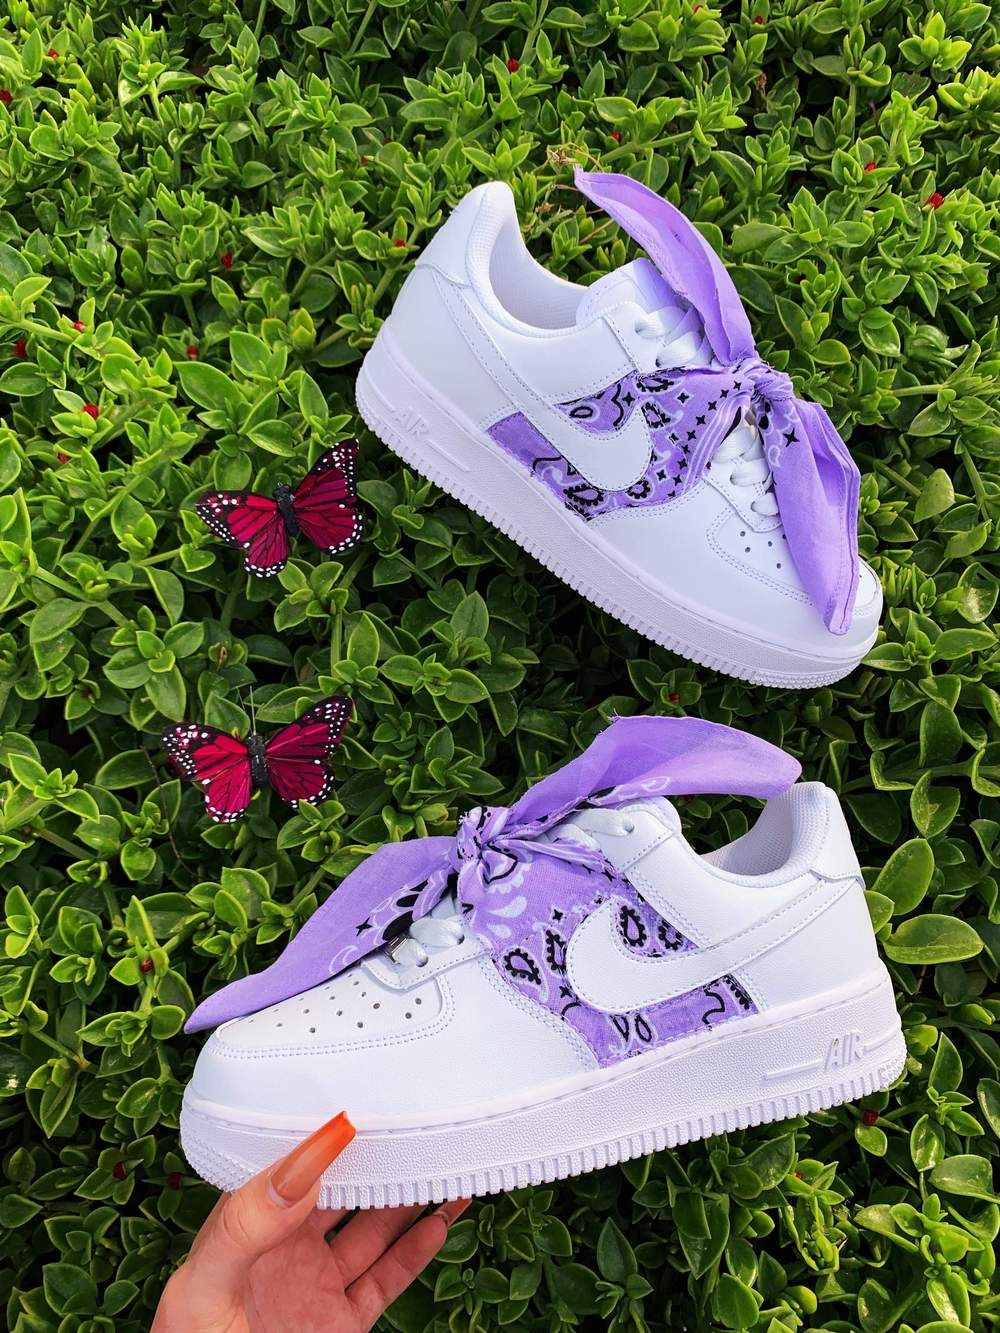 Purple Bandana AF1 in 2020 Neon nike shoes, Nike shoes